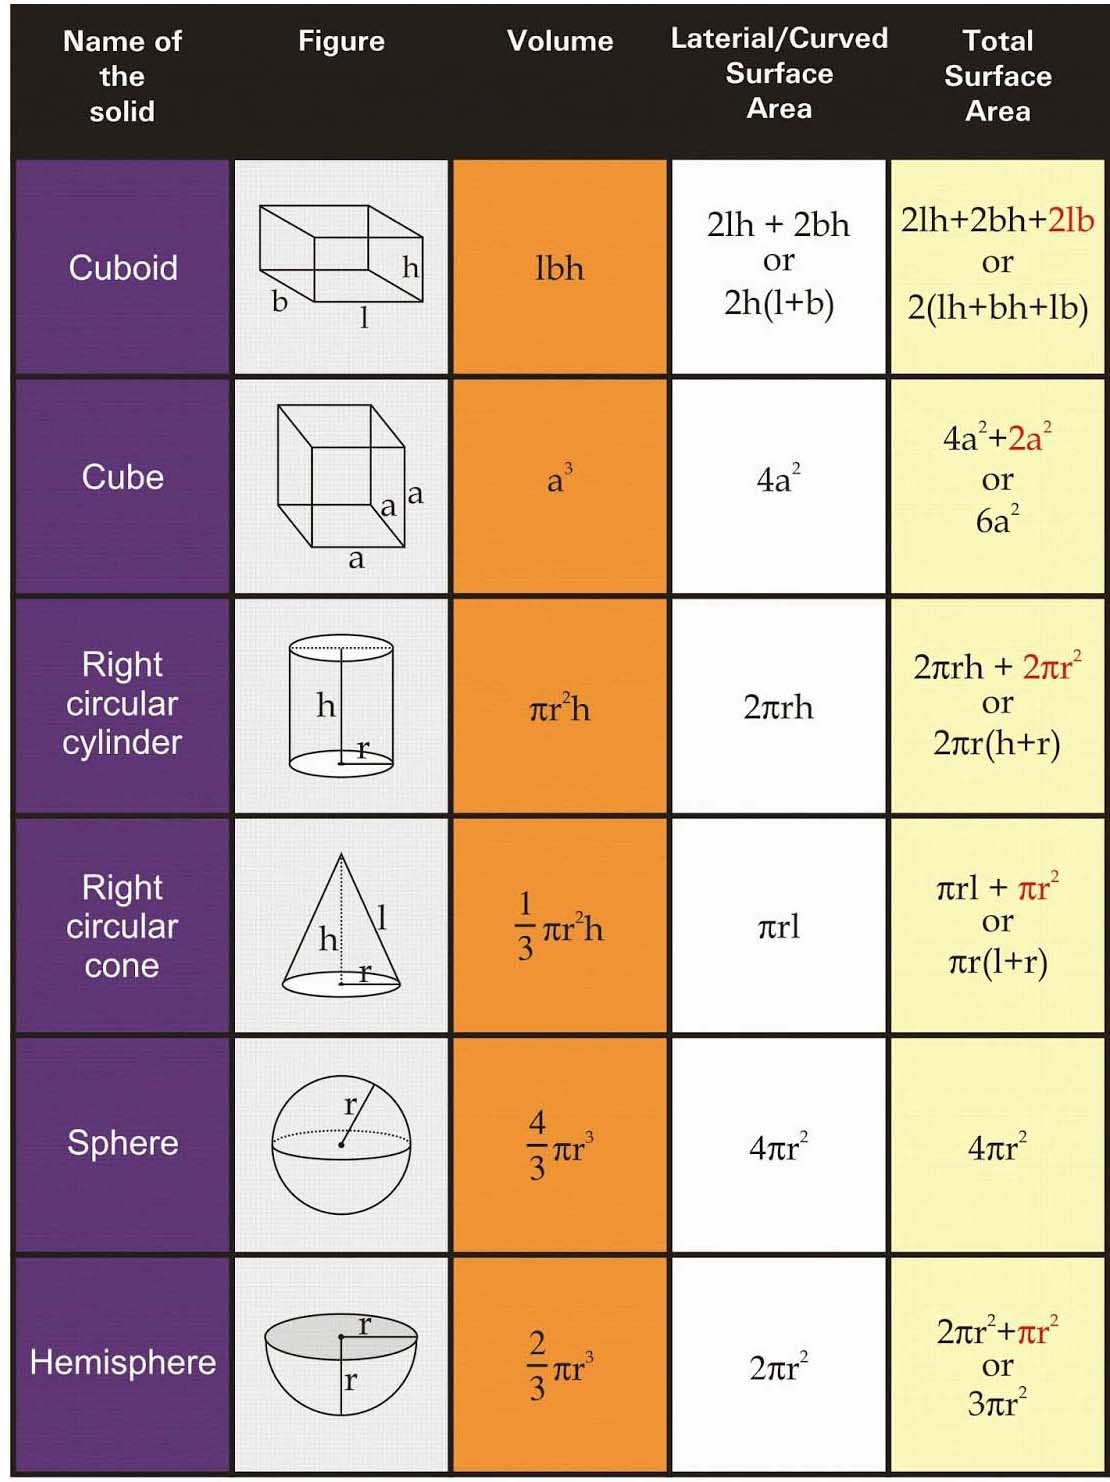 RS Aggarwal Solutions Class 10 Chapter 19 Volume and Surface Areas of Solids a1